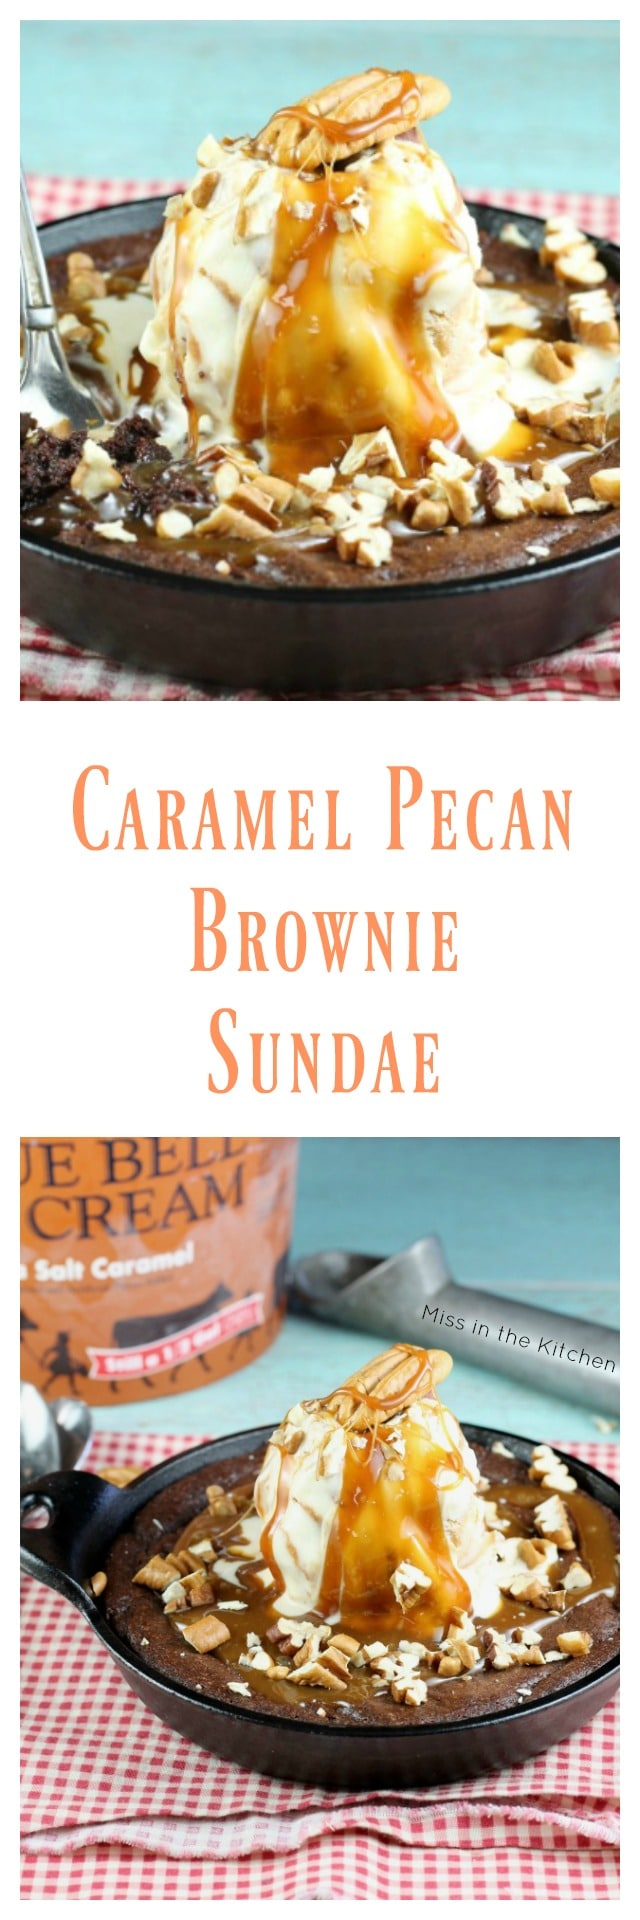 Caramel Pecan Brownie Sundae Recipe for two ~ perfect for romantic dinners and Valentine's Day from MissintheKitchen.com